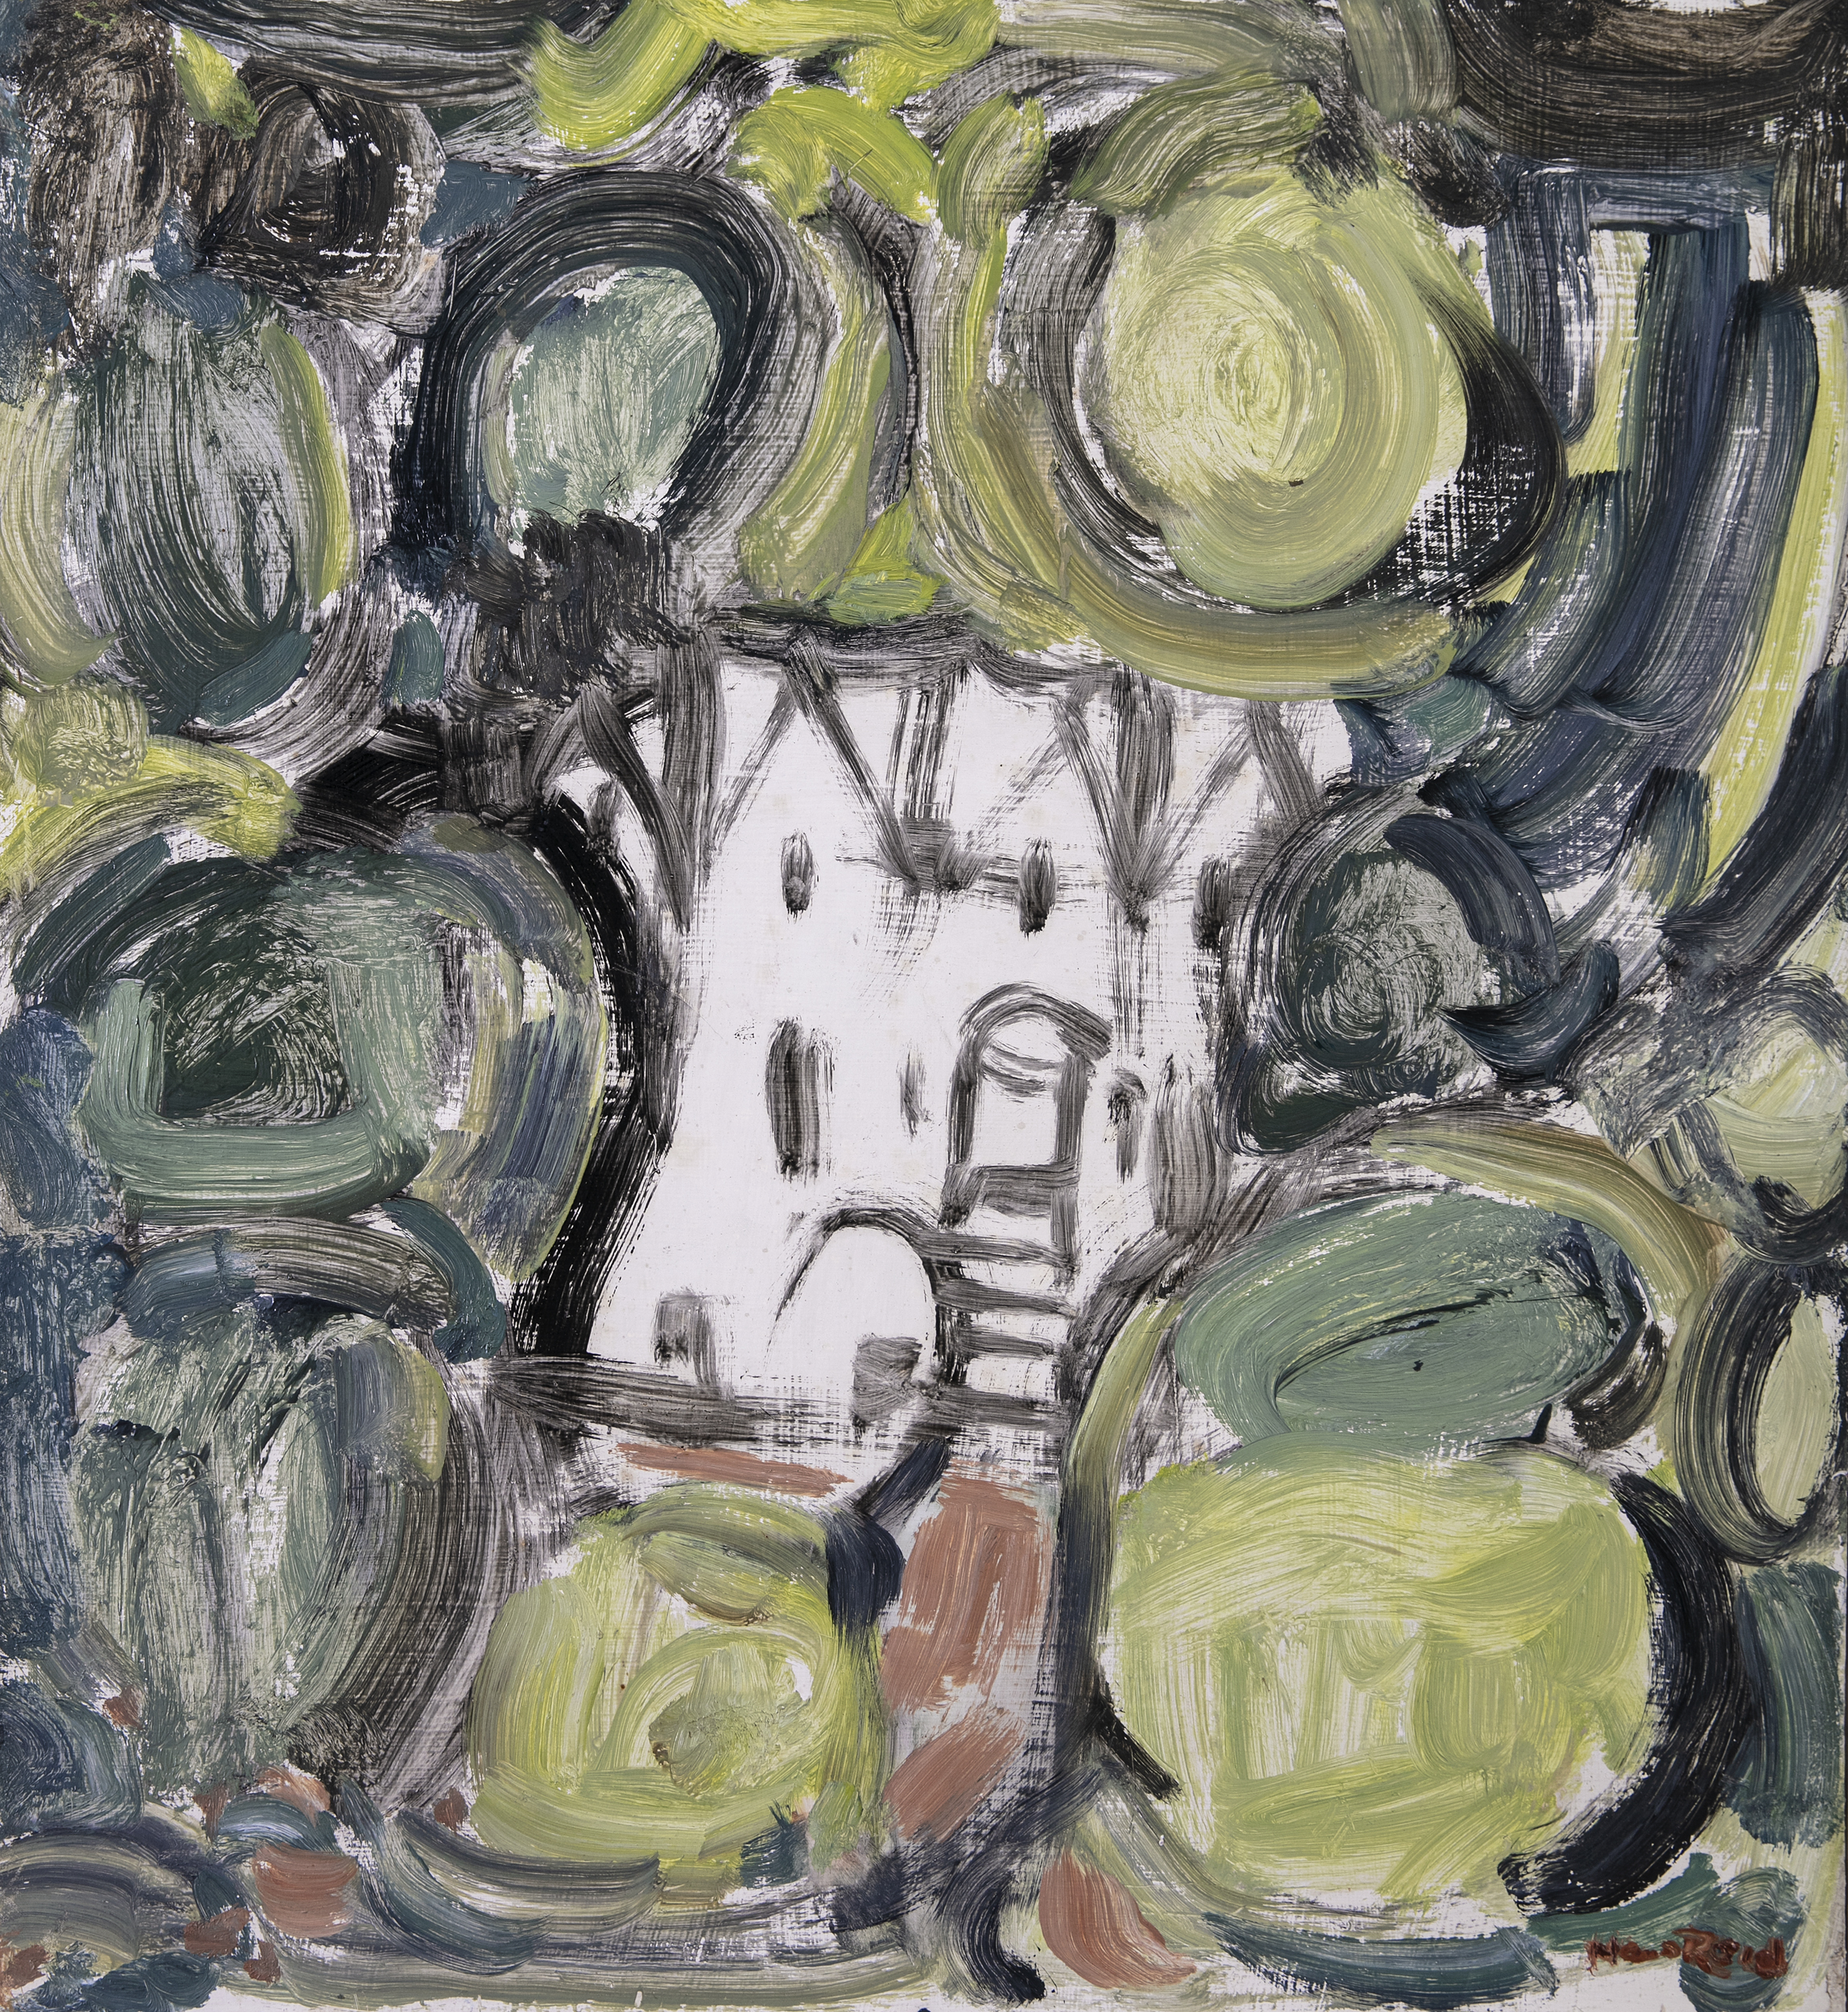 Lot 52 - Nano Reid (1900-1981)Secluded Mansion (1973)Oil on board, 61 x 56cm (24 x 22)SignedExhibited: The